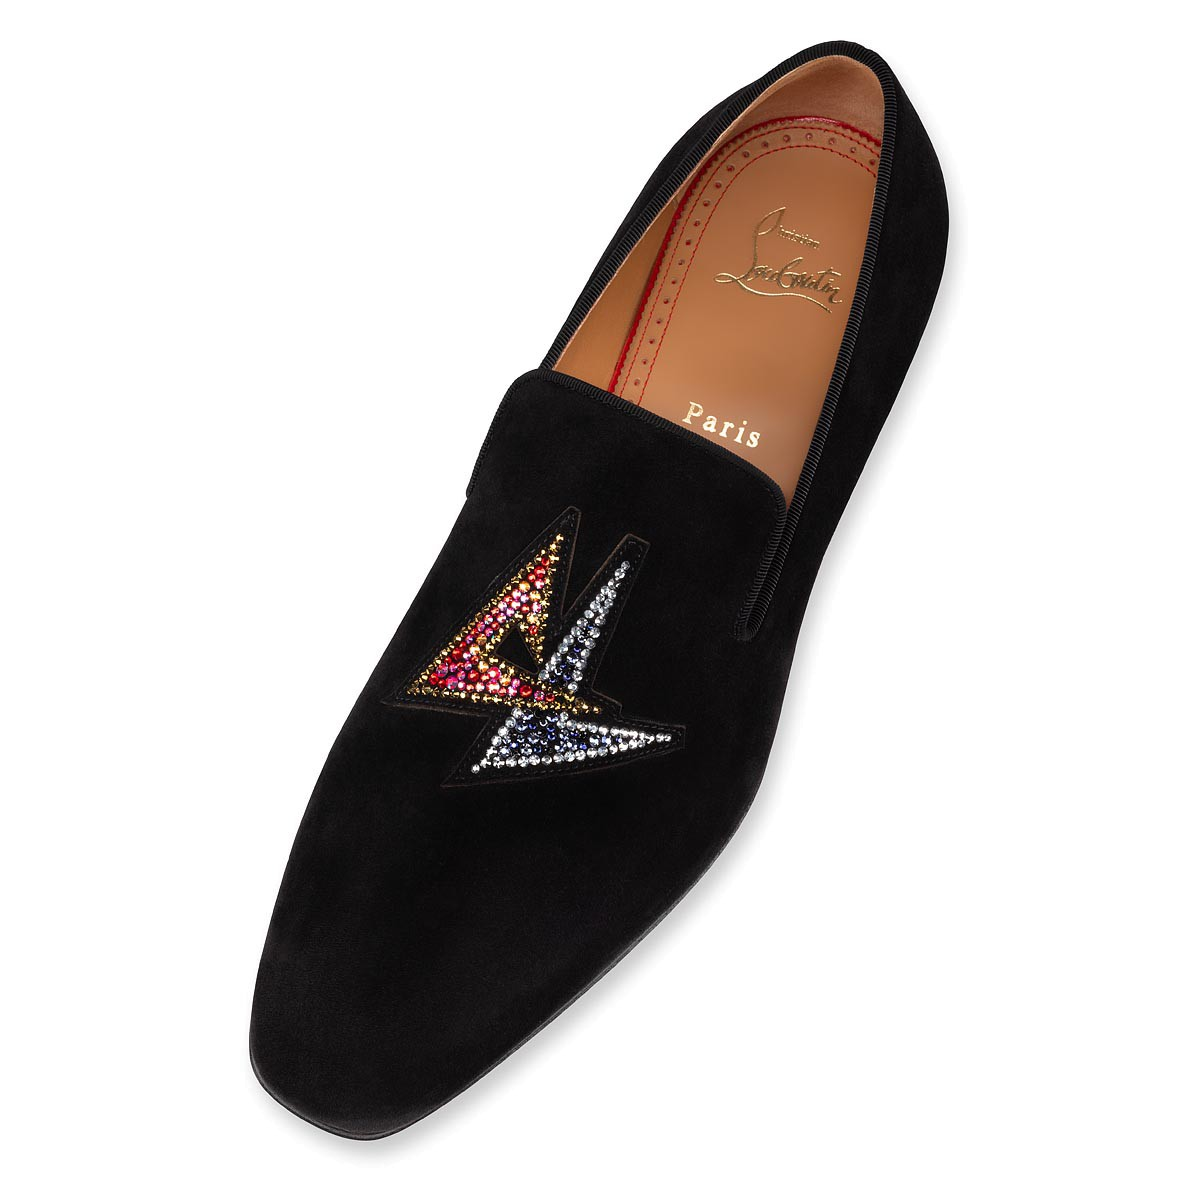 Shoes - Dandelion Oui - Christian Louboutin